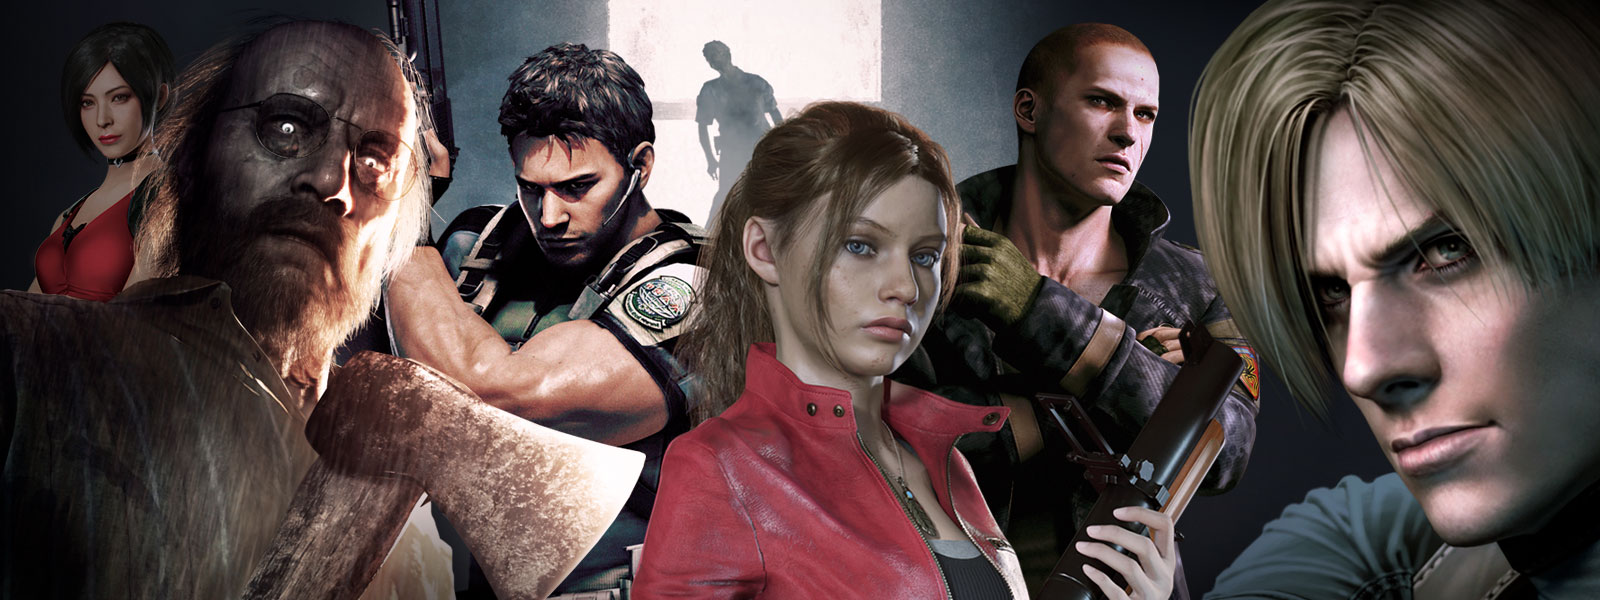 A collage of characters from Resident Evil titles on sale, including RESIDENT EVIL 2, RESIDENT EVIL 7: Biohazard, and Resident Evil Triple Pack.